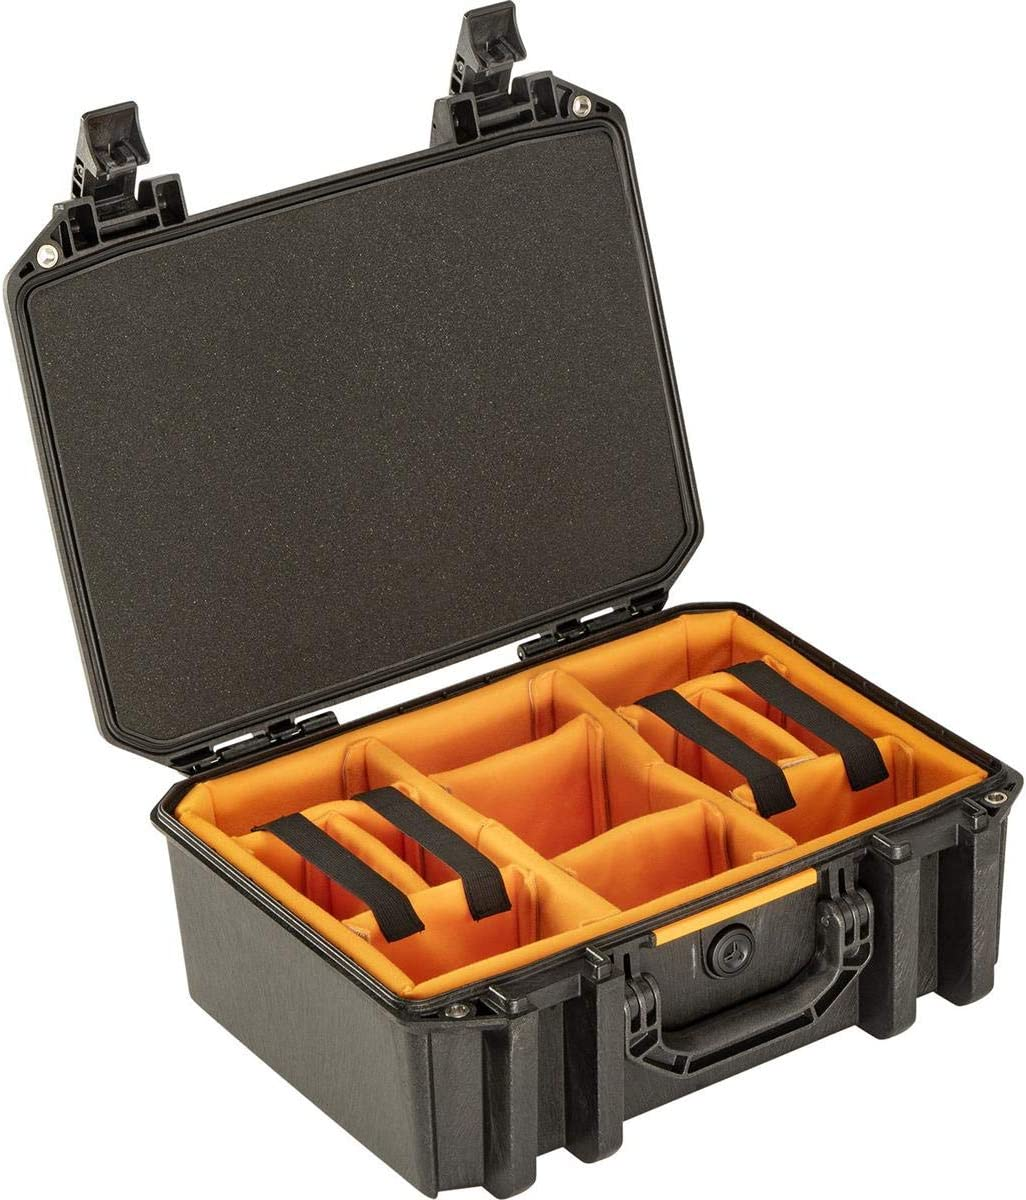 Pelican Vault V300 Large Case with Lid Foam and Dividers, Black